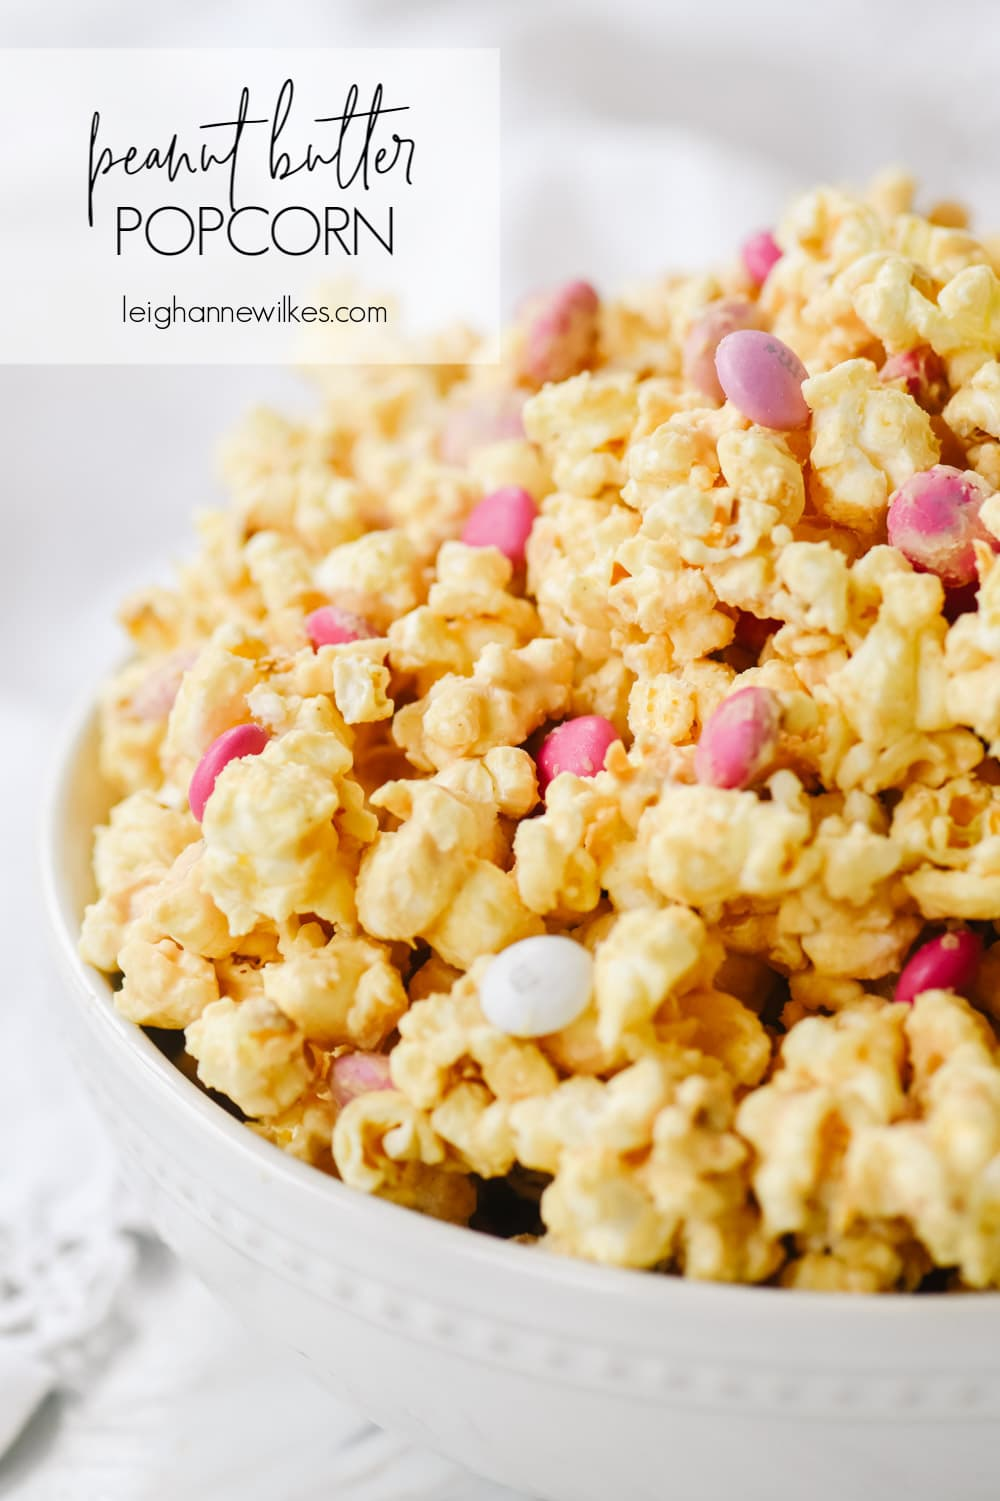 bowl of peanut butter popcorn with M & M's